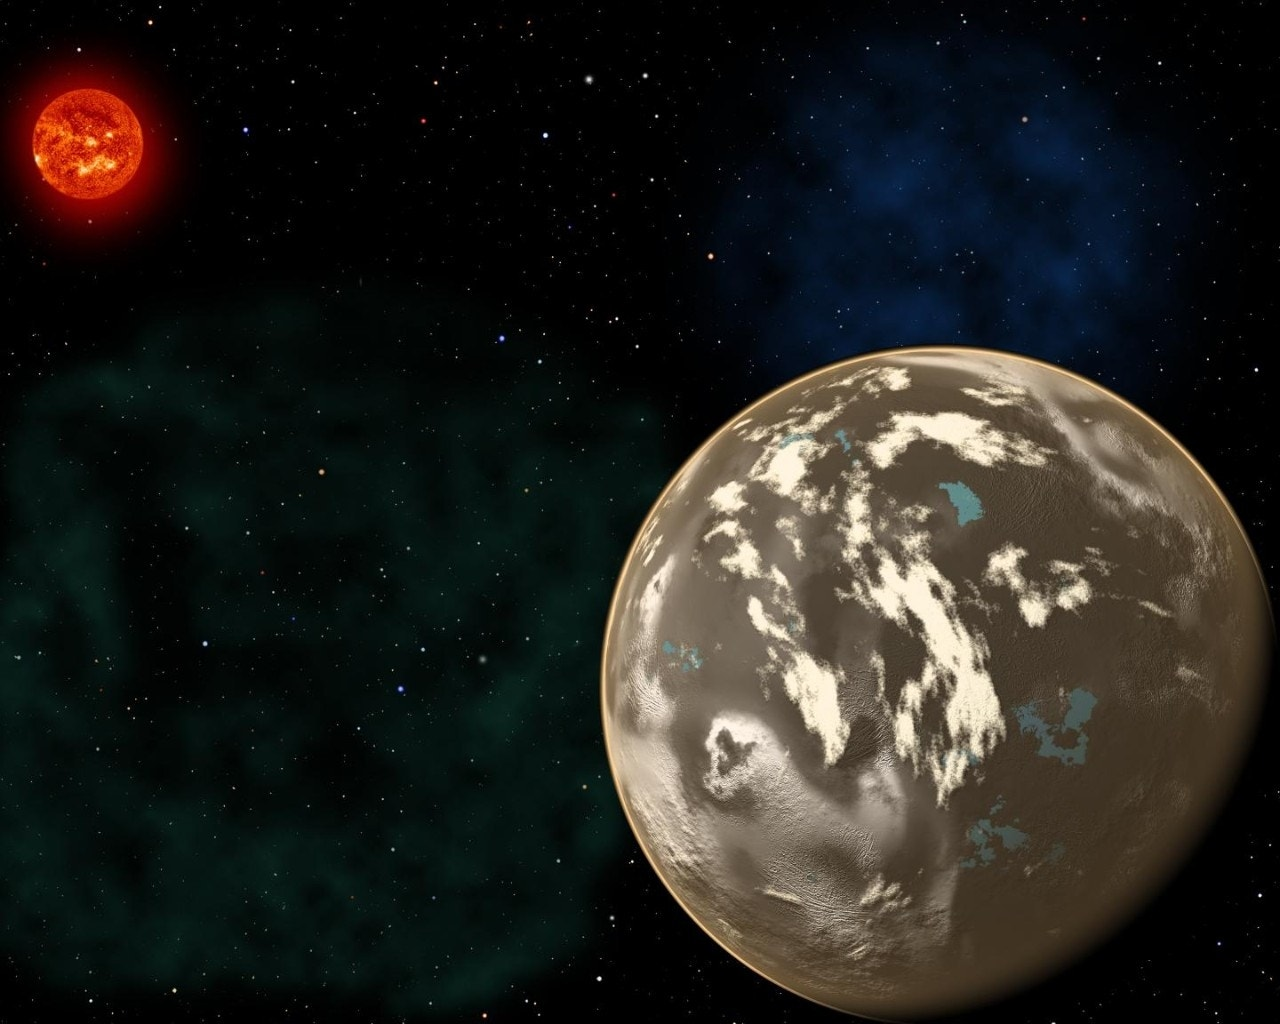 Carbon planets around special stars could have hosted life ...